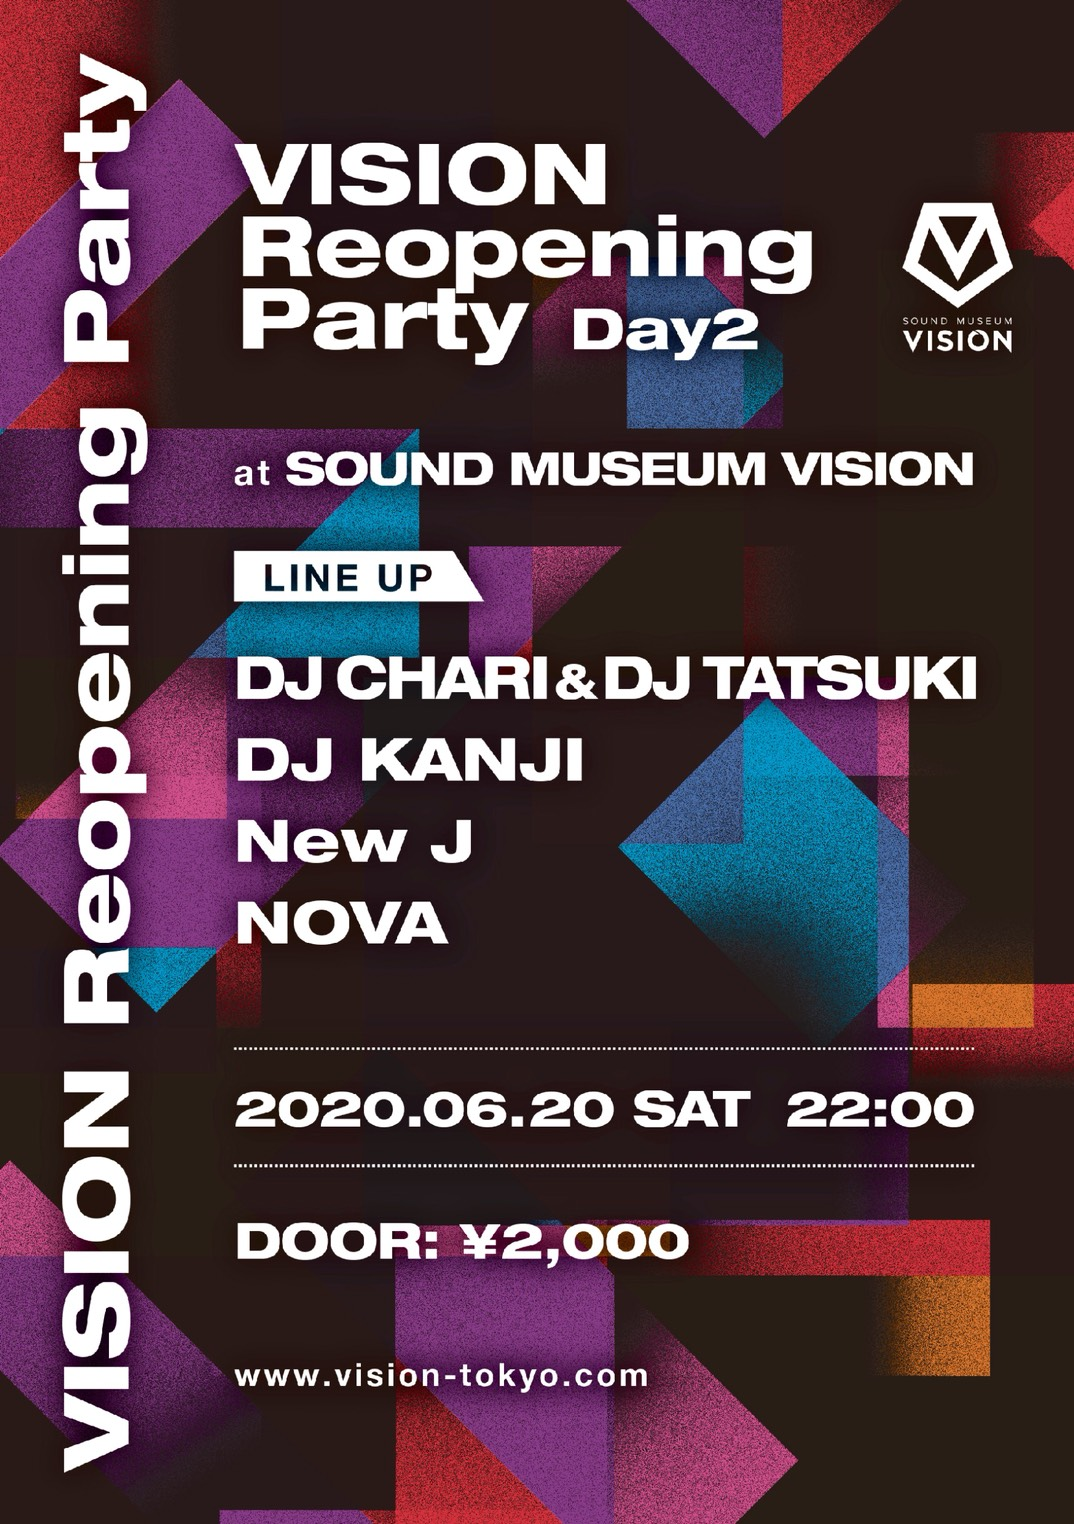 VISION Reopening Party Day2